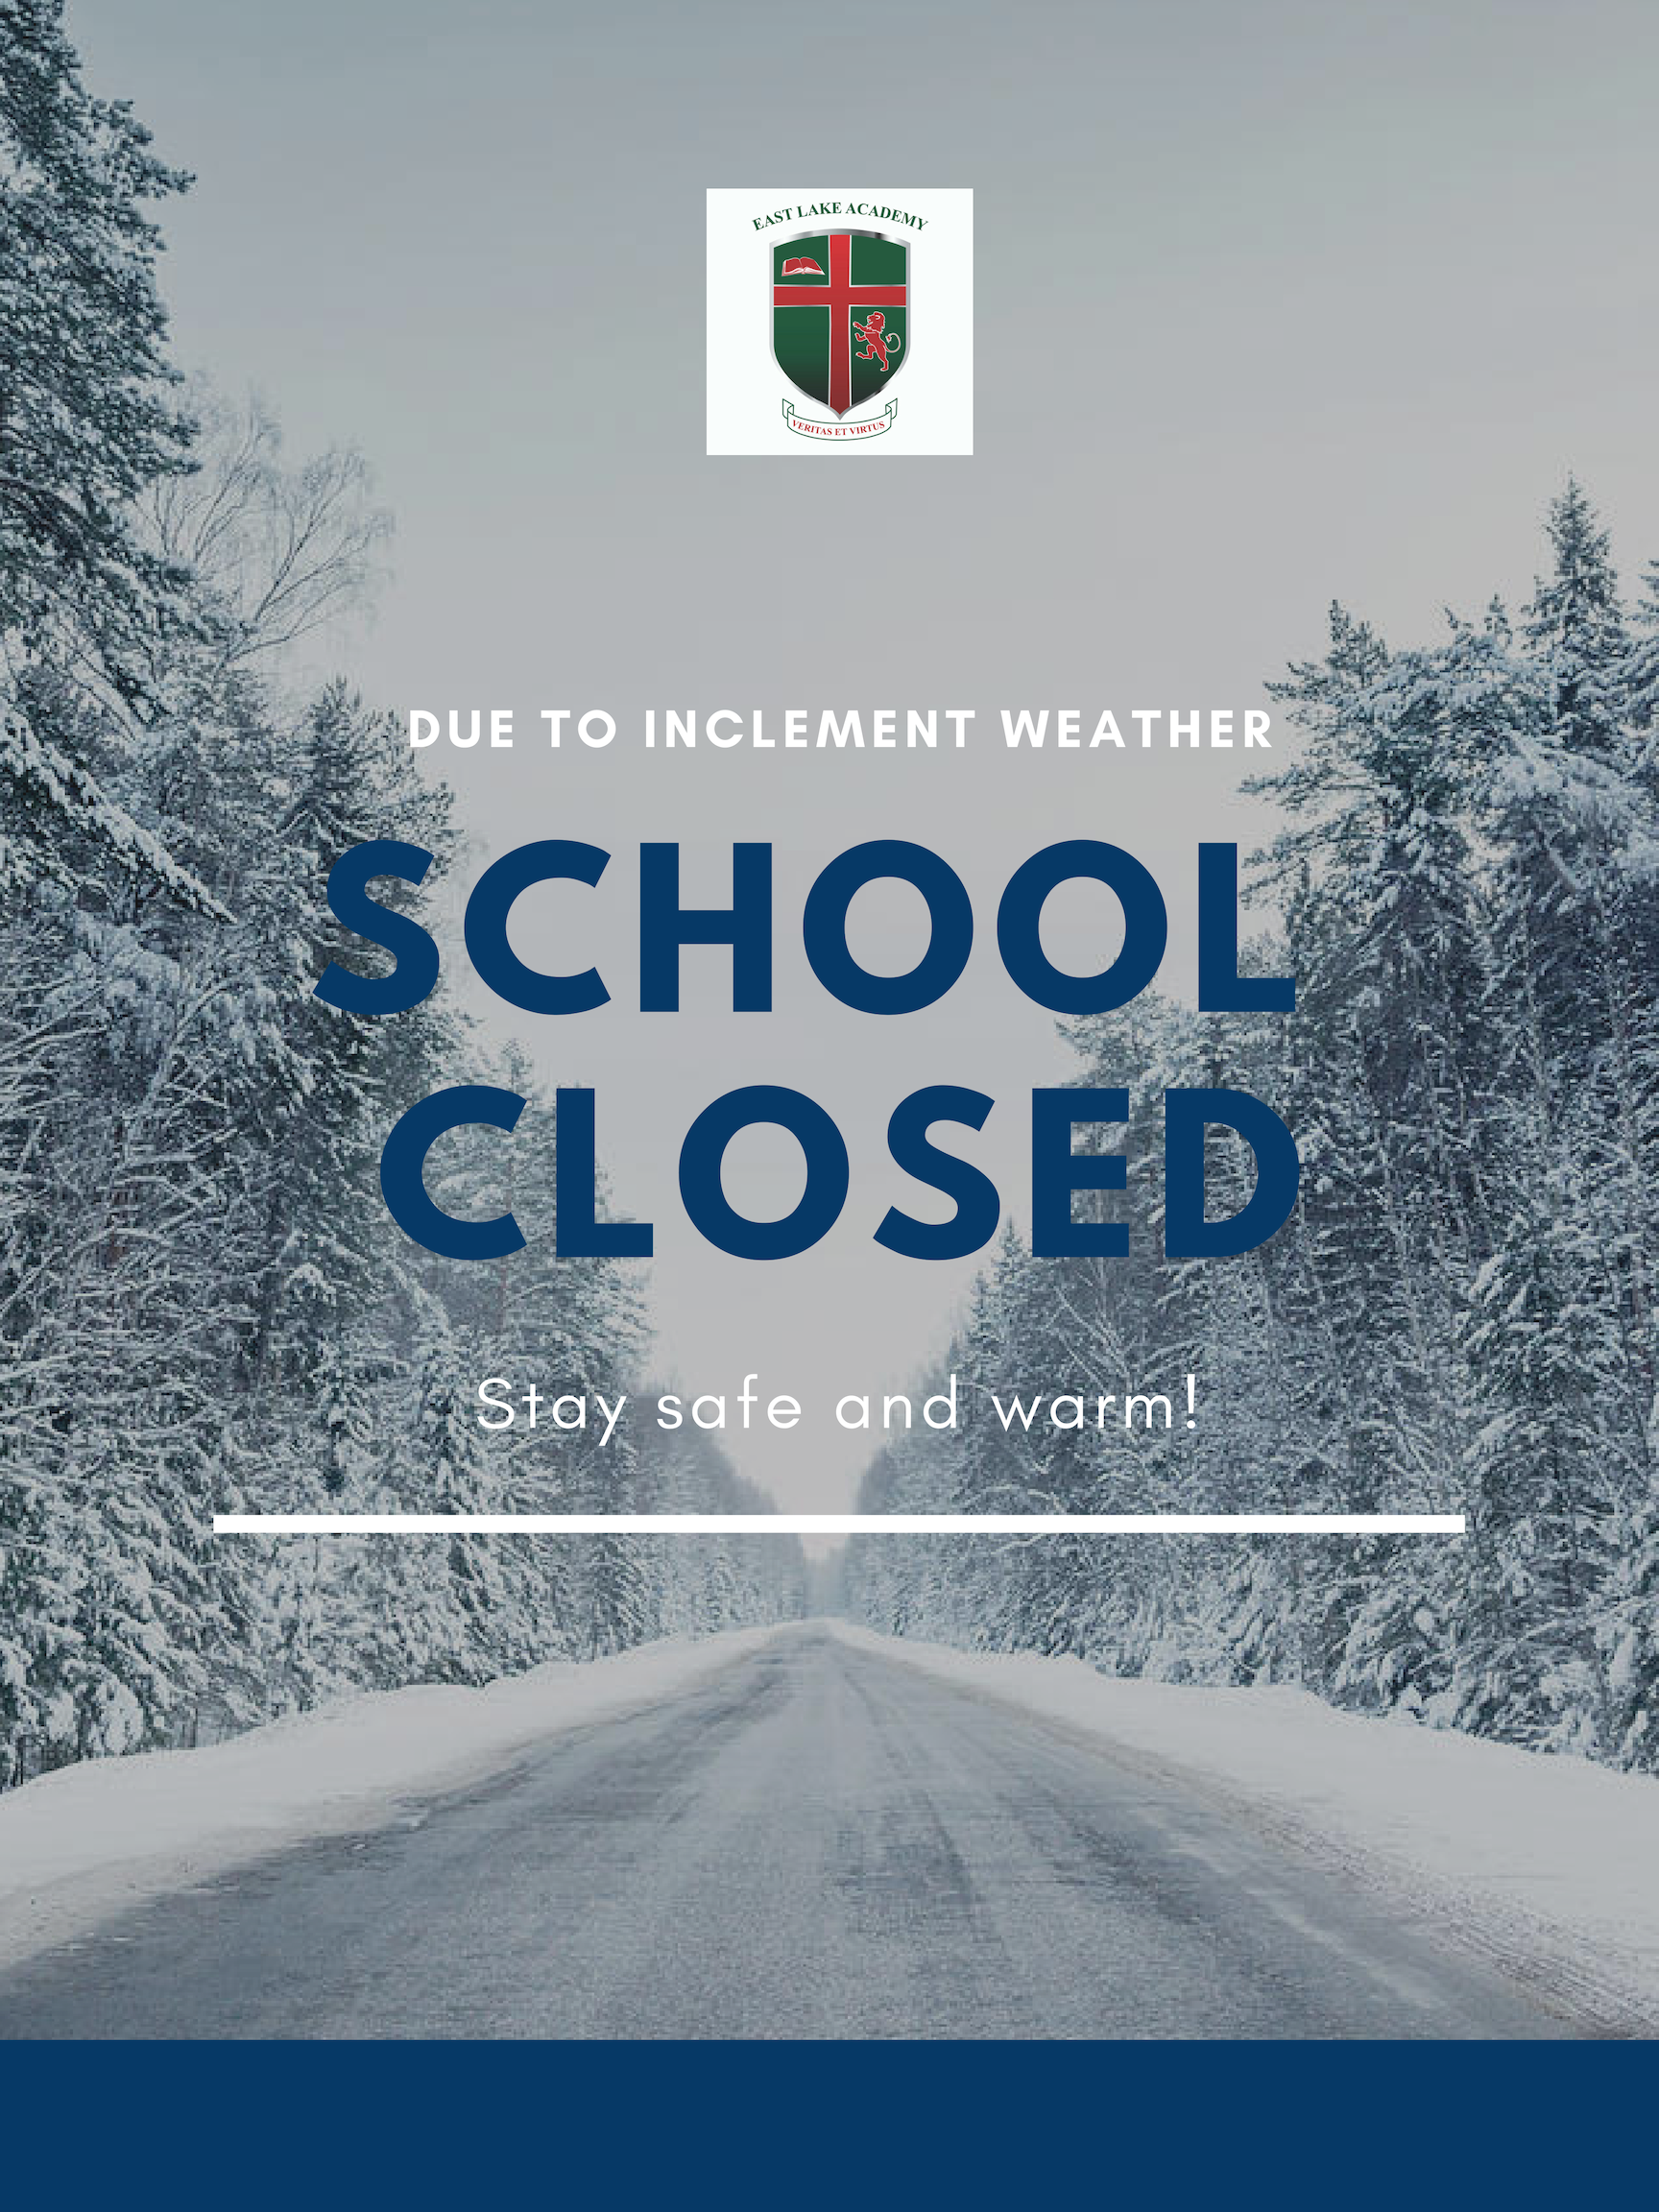 School Closed 1/30&31